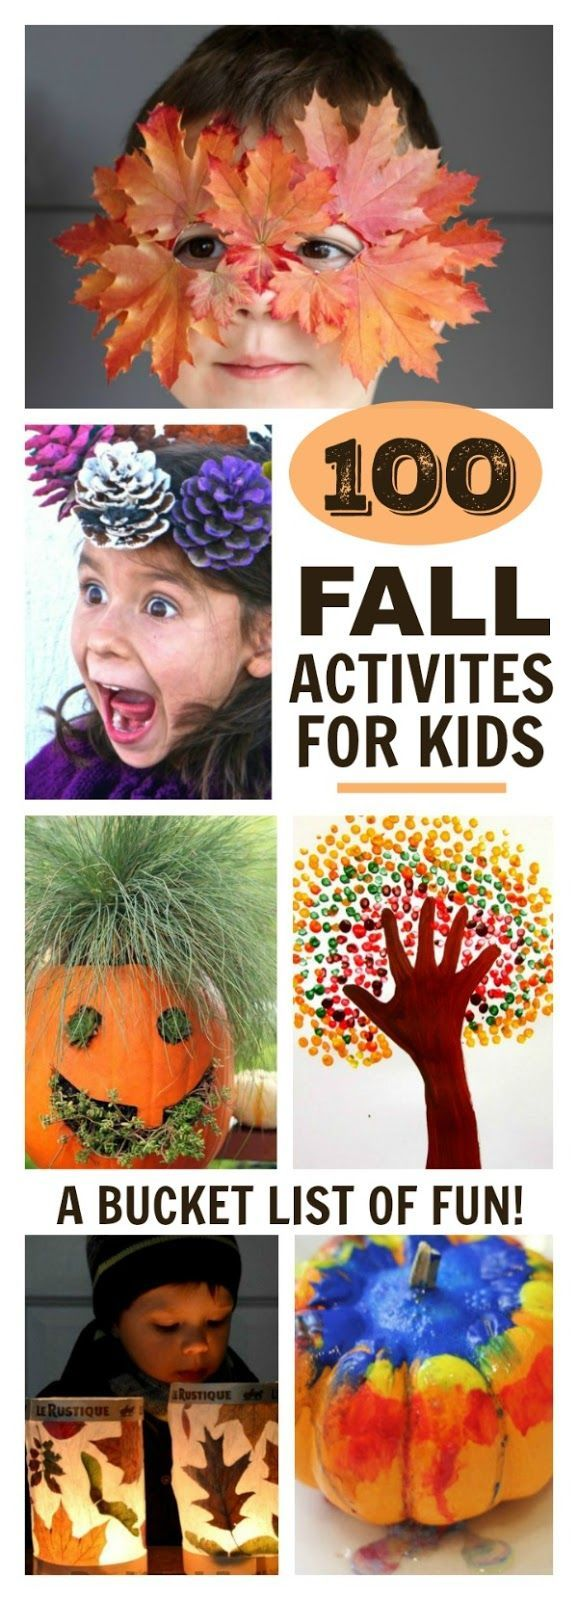 Fall Activities for Kids! A great bucket list for kids and the whole family to enjoy! Make leaf lanterns,hairy pumpkin planters and pine cone crowns and more!